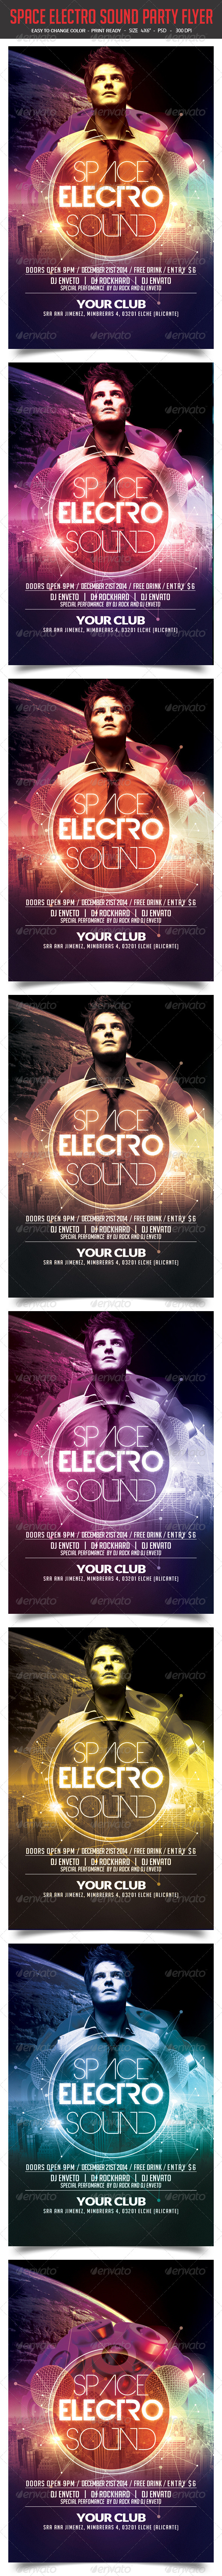 GraphicRiver Space Electro Sound Party Flyer 8391519